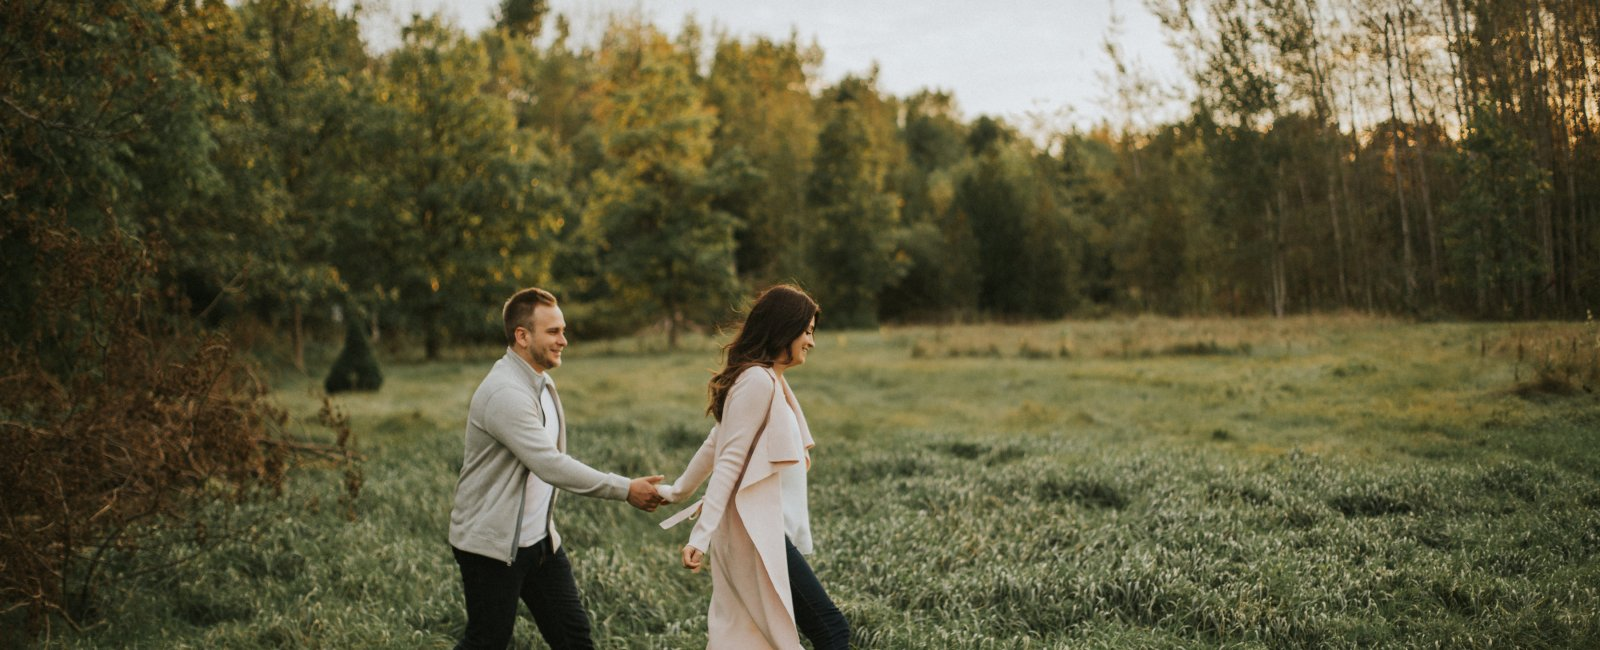 Real Brides || Erin + Dave The Engagement Shoot